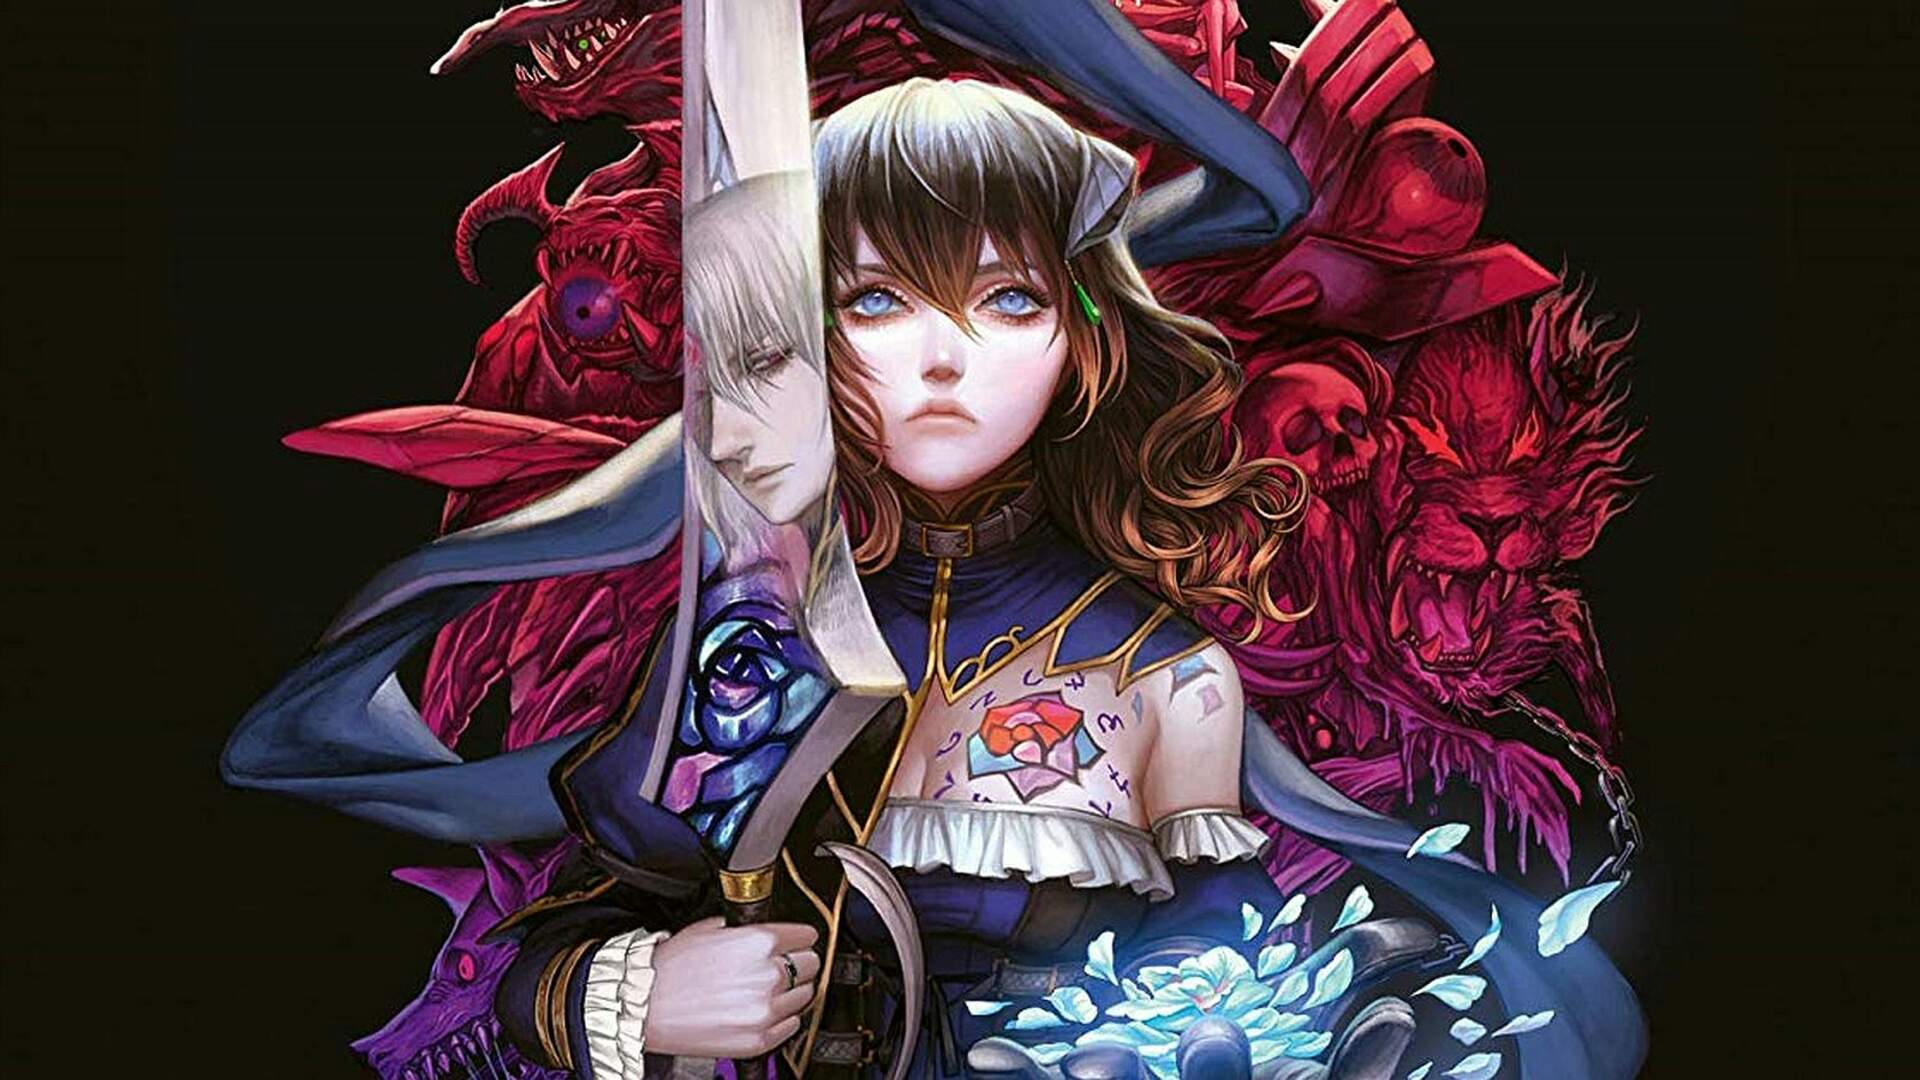 Bloodstained Ritual of the Night Switch - When Does Bloodstained Release for Nintendo Switch?